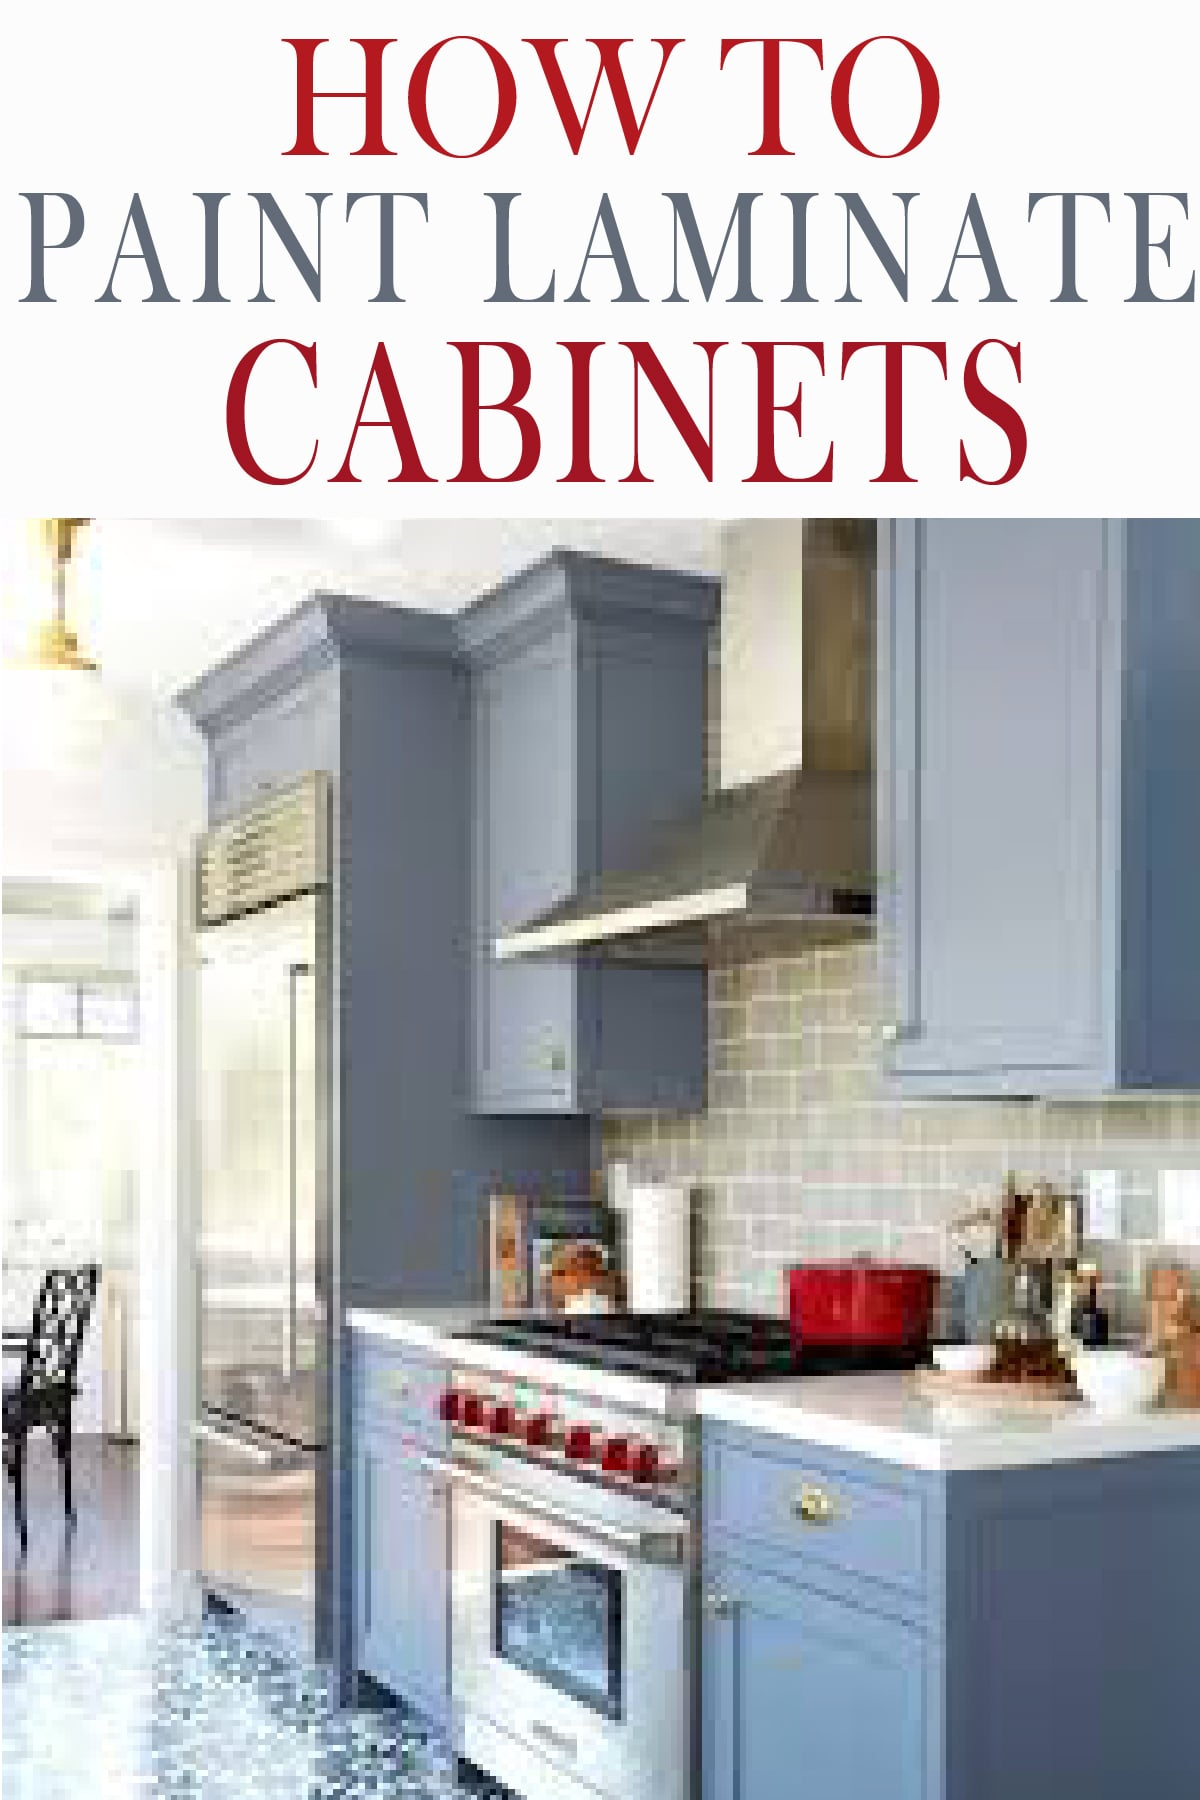 Learn how to paint laminate cabinets like a pro! Tips and tricks to getting paint to adhere and give you smooth finish!